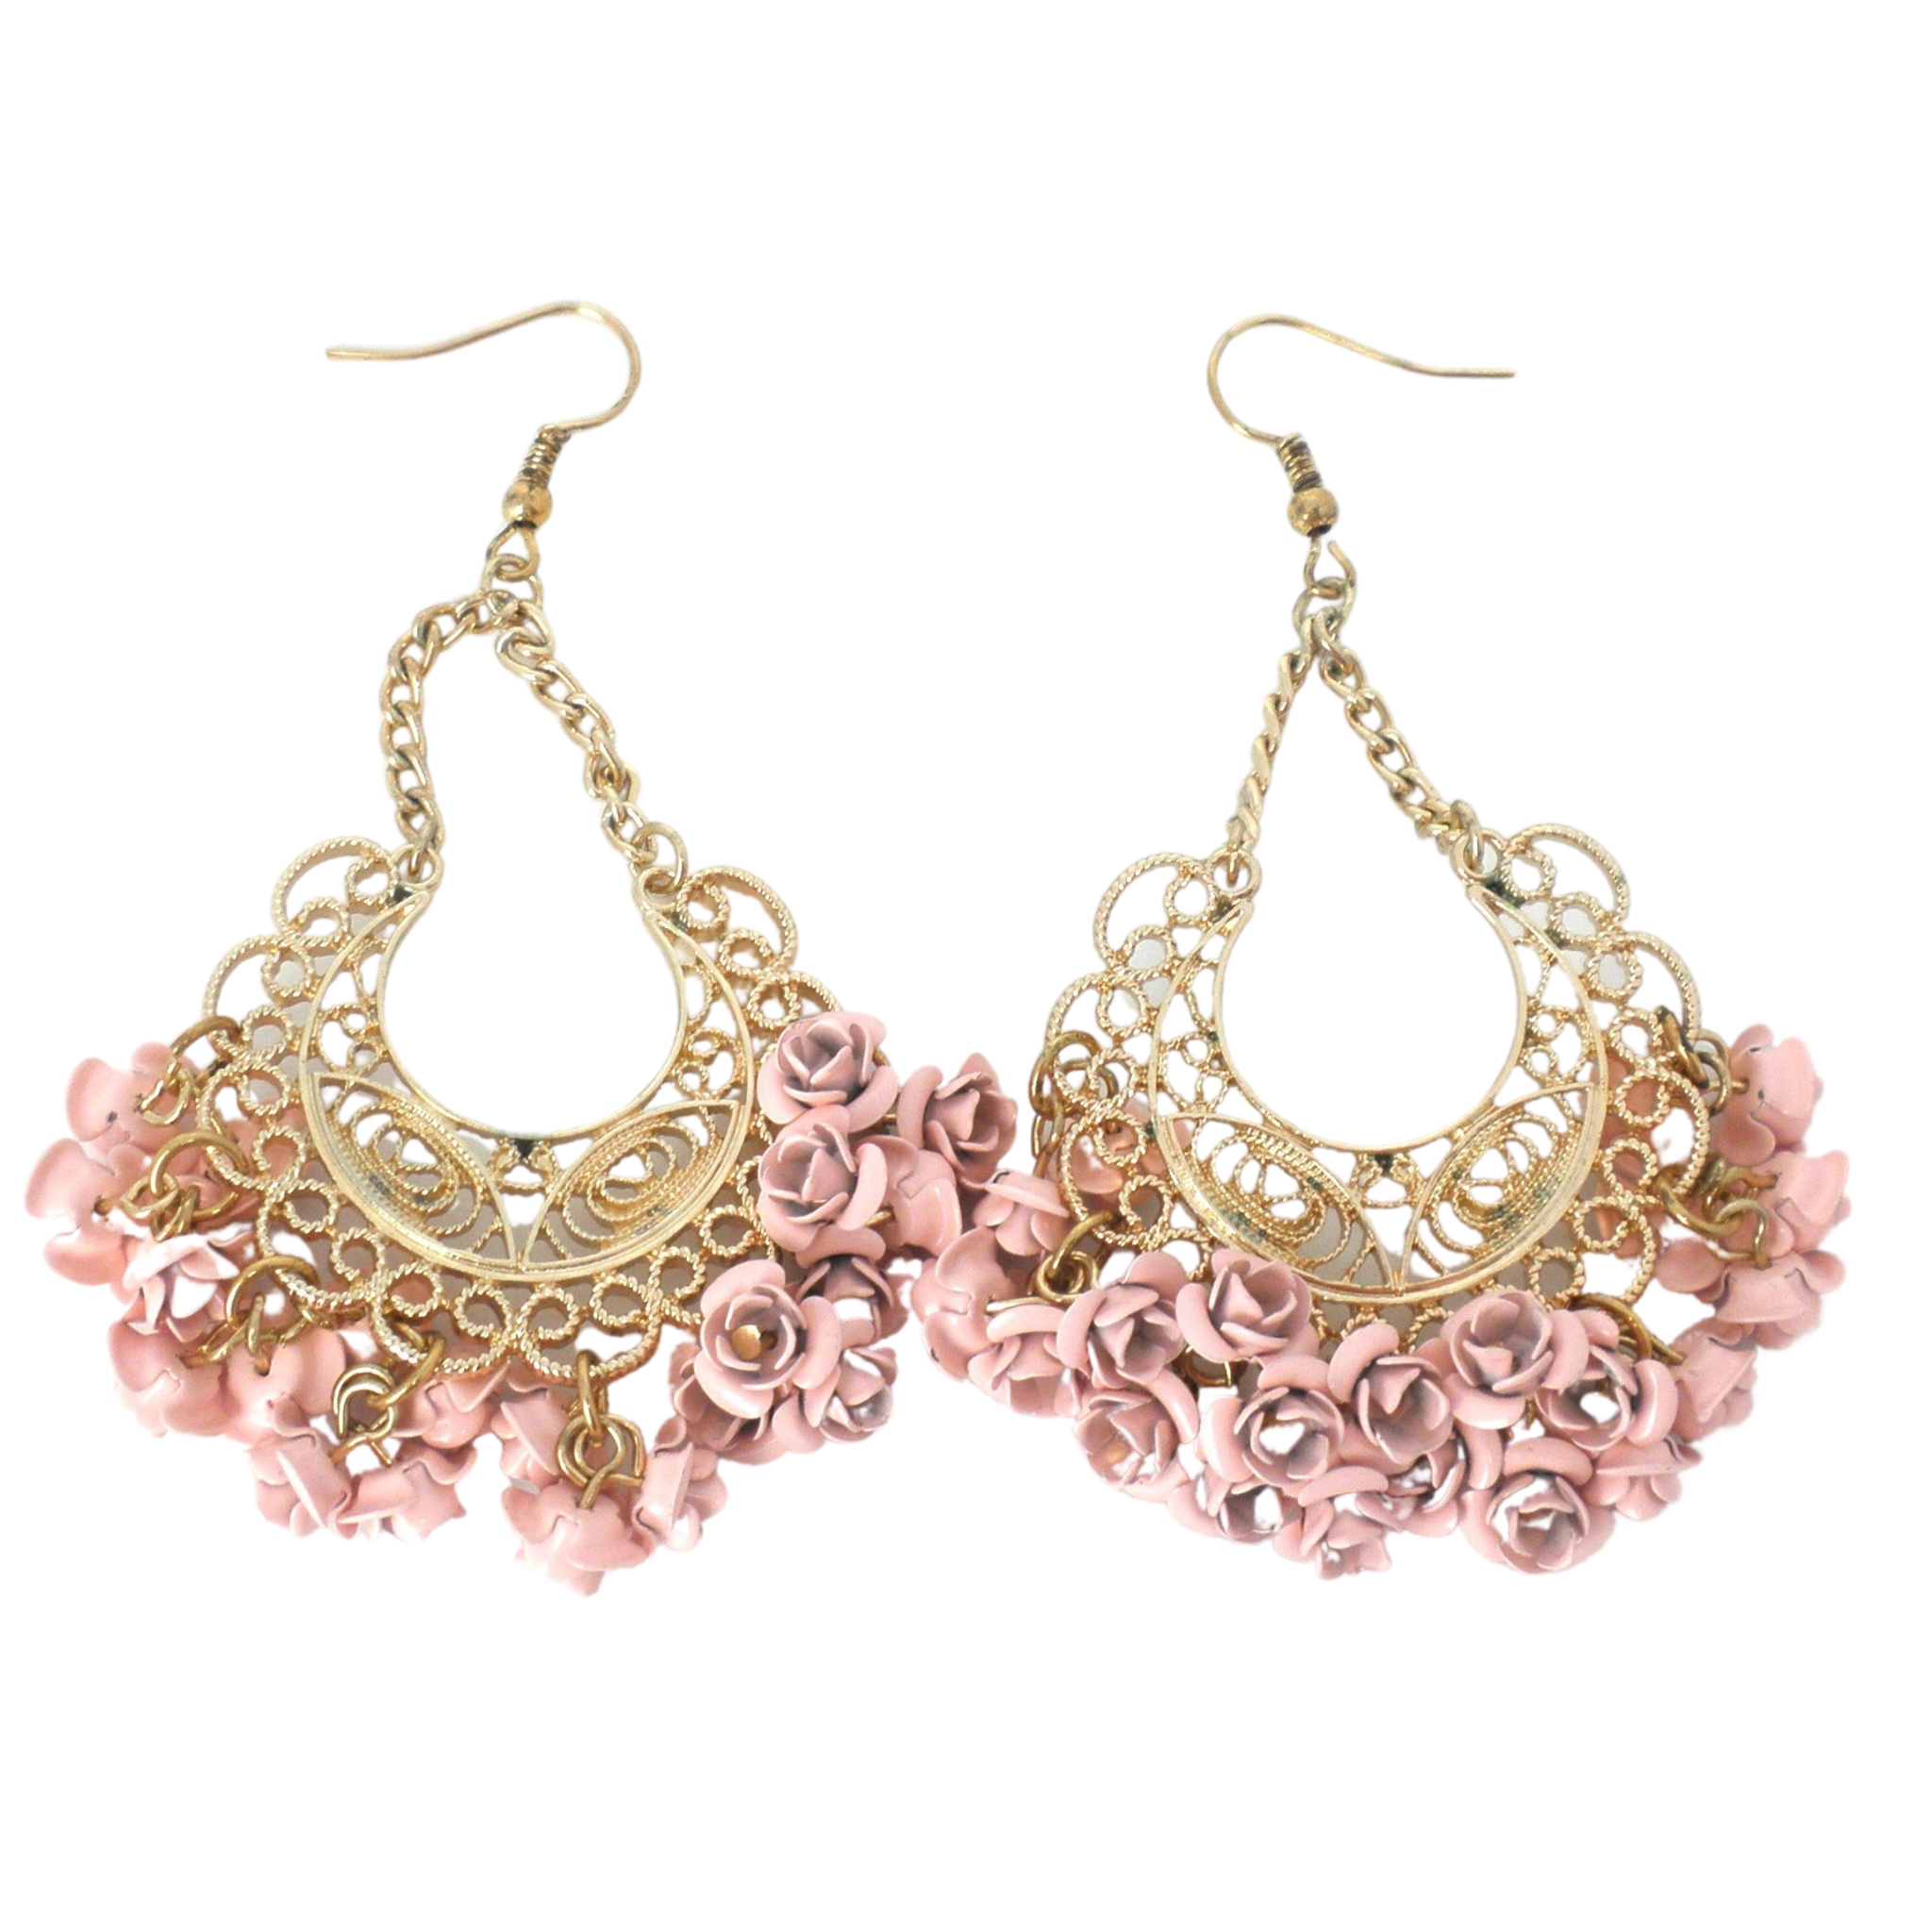 Gold Dangly Earrings with Pink Flowers - The Fashion Foundation - {{ discount designer}}